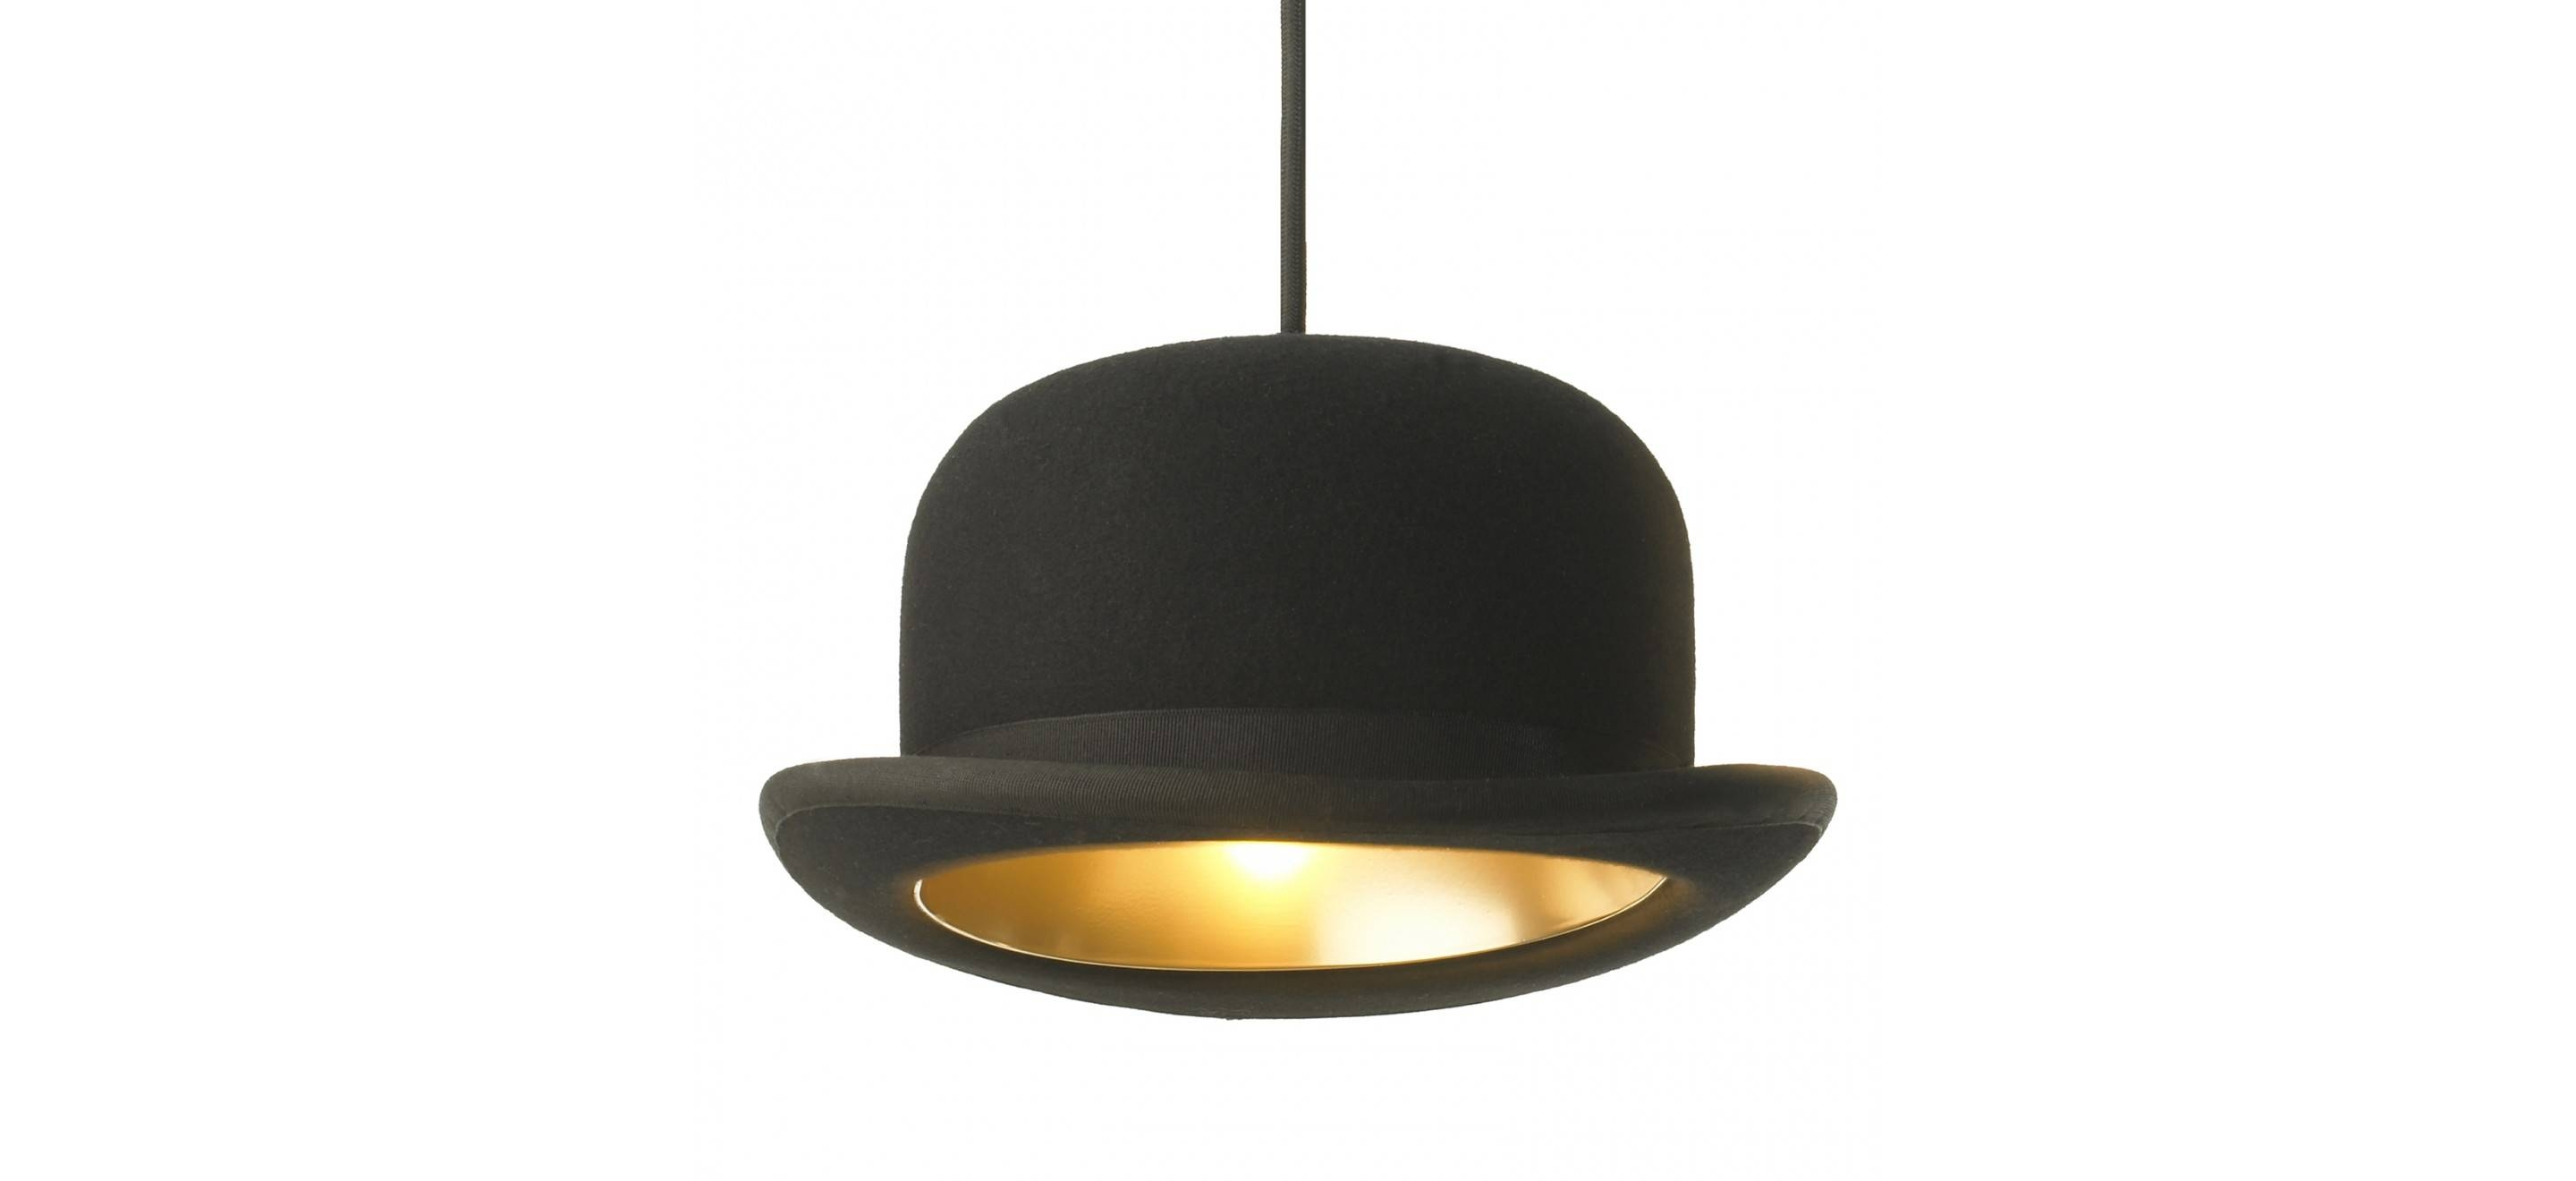 Innermost Jeeves Felt Bowler Hat Pendant Light within Jeeves and Wooster Pendant Lights (Image 4 of 15)